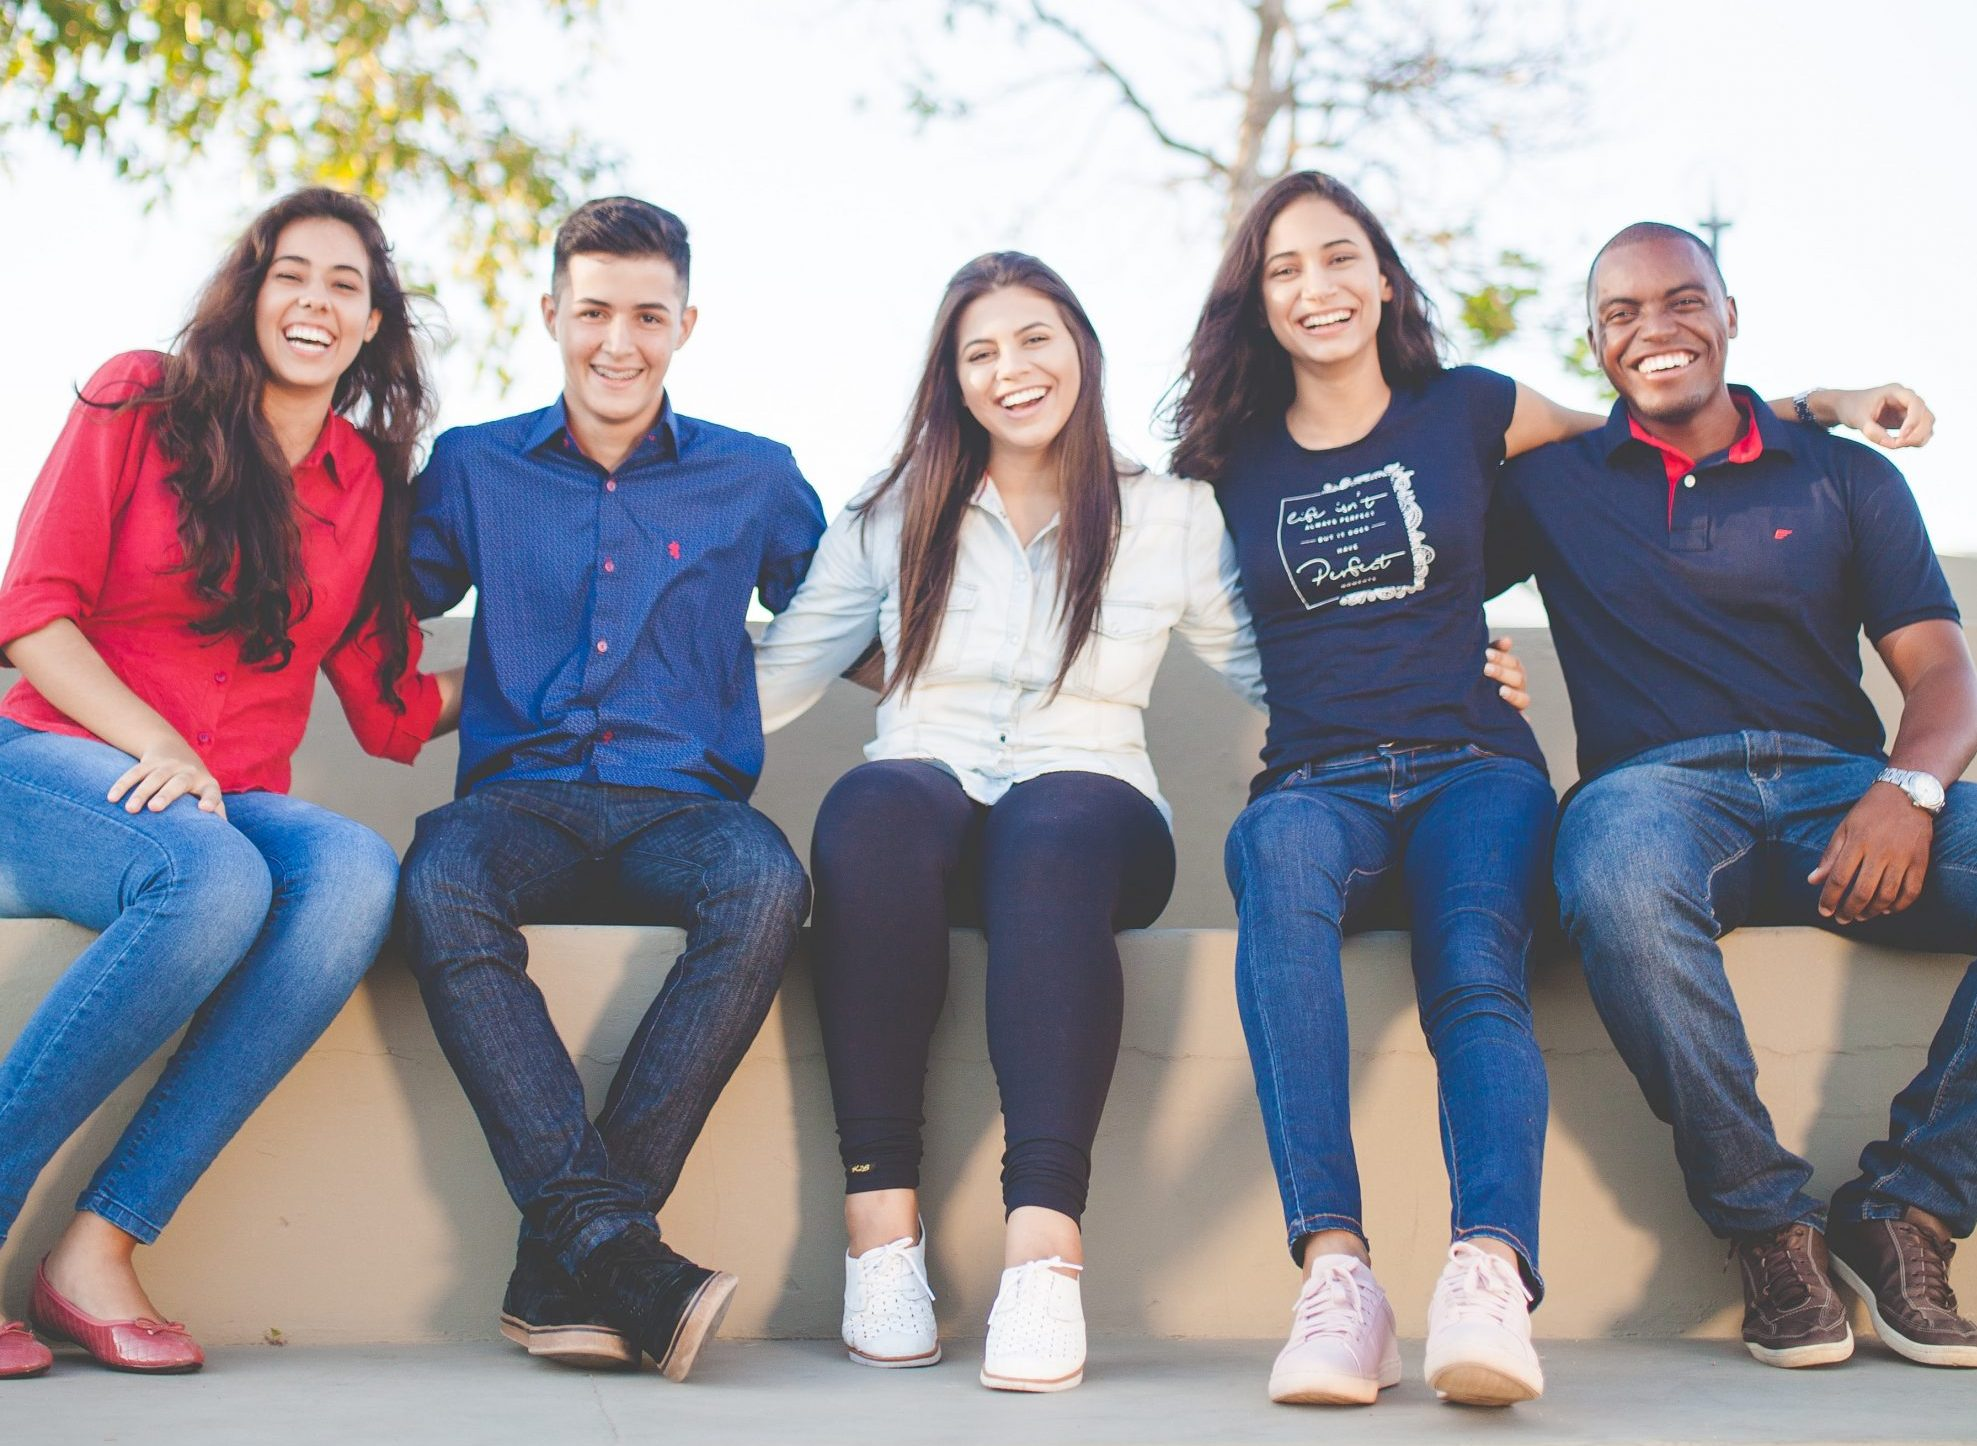 Group of 5 teenagers with arms around each other smiling